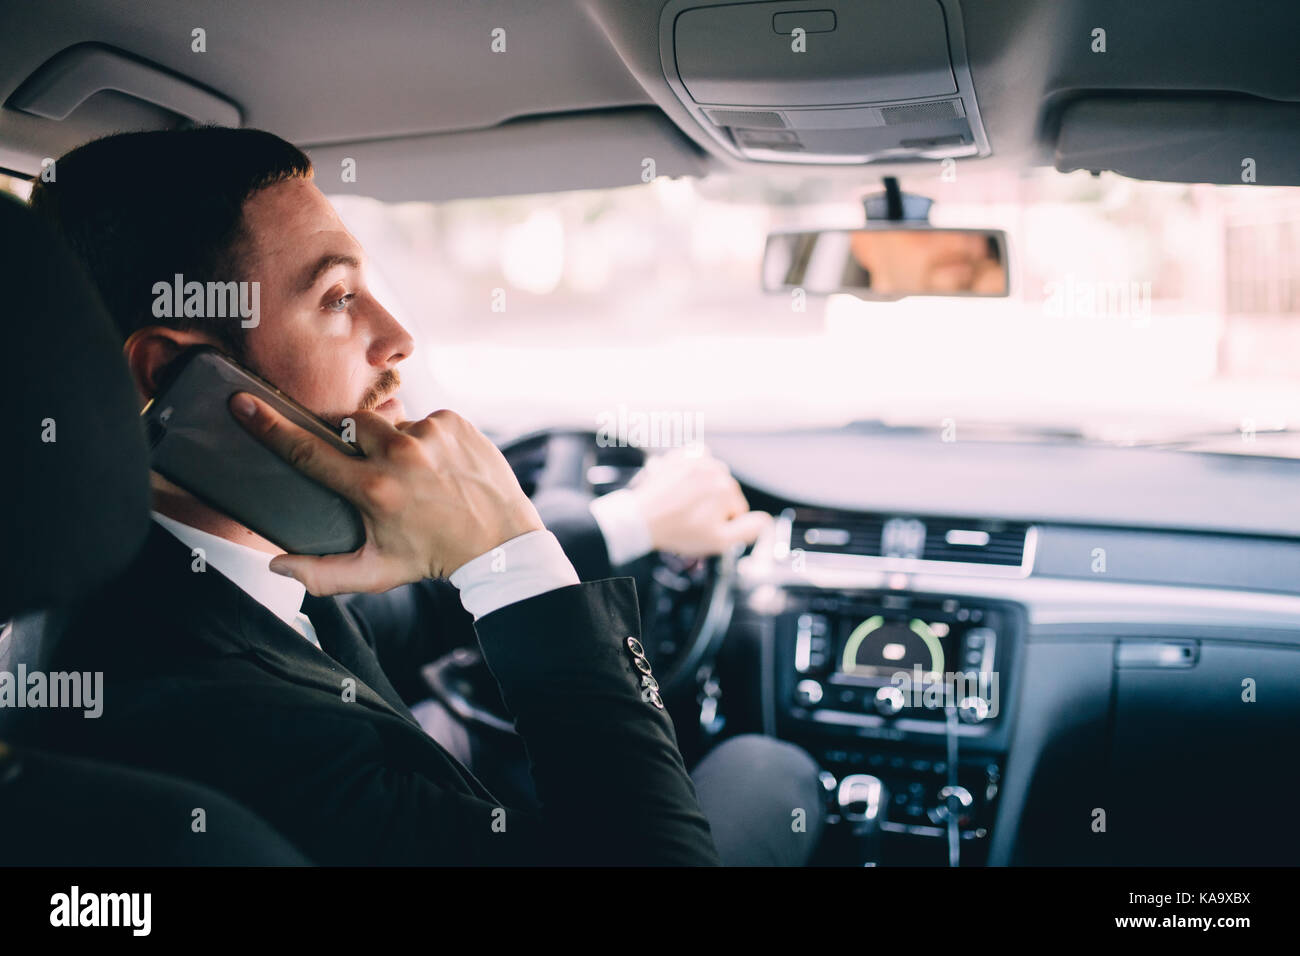 Man looking at mobile phone while driving a car. - Stock Image